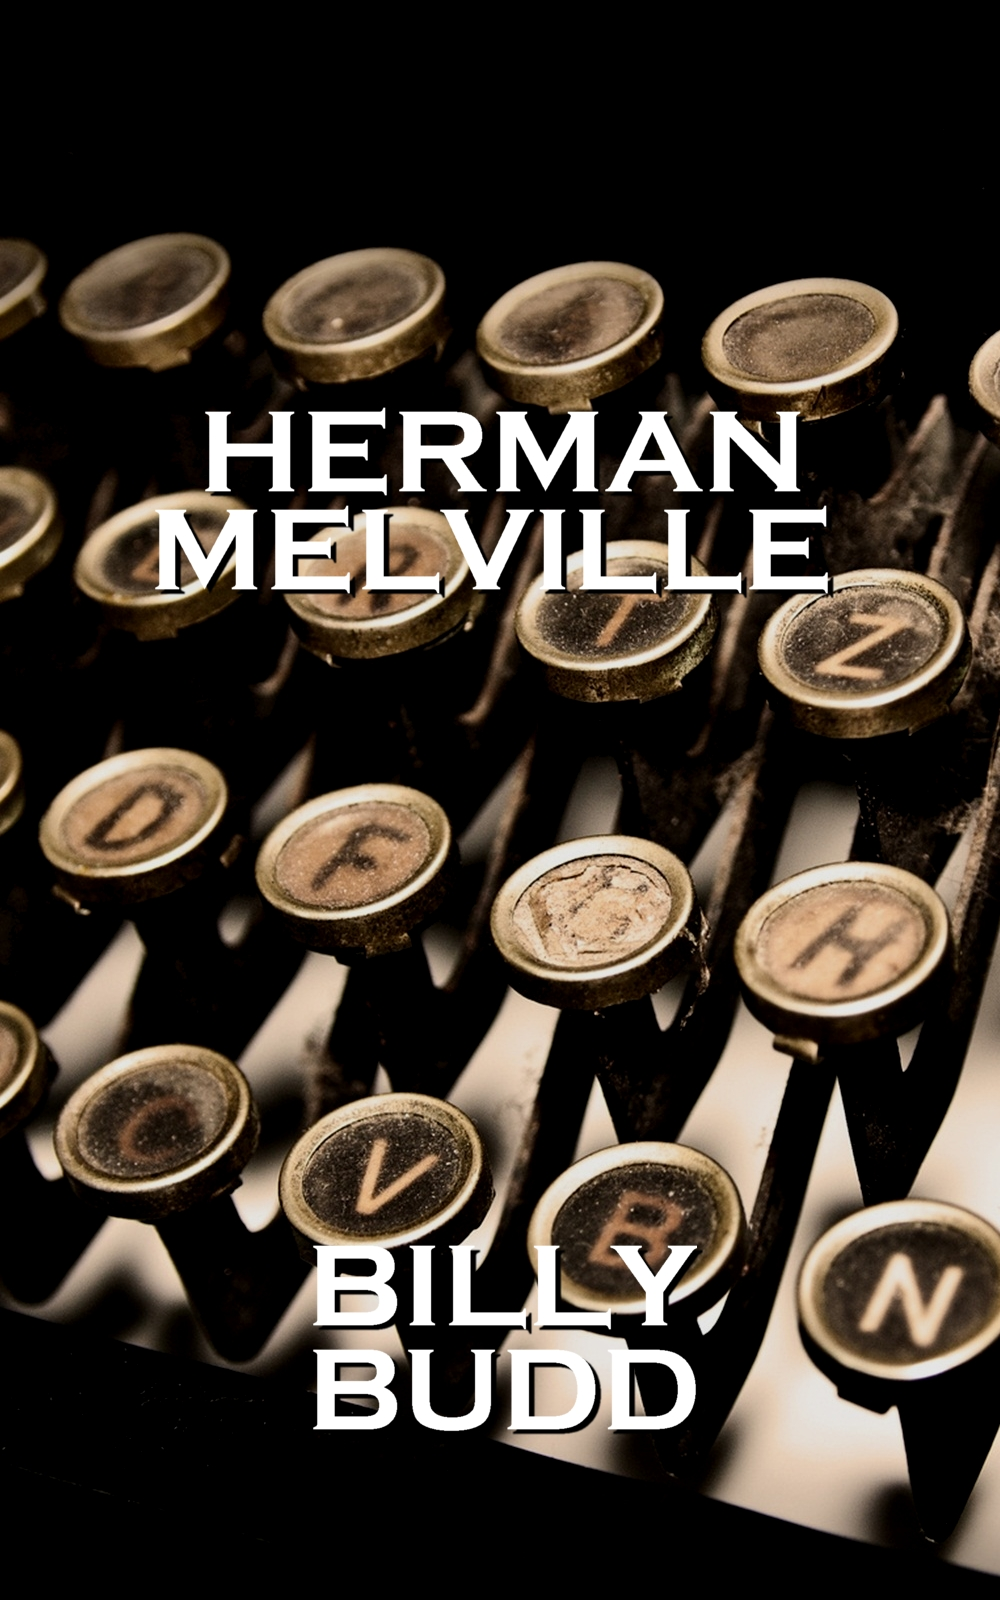 Herman Melville - Billy Budd